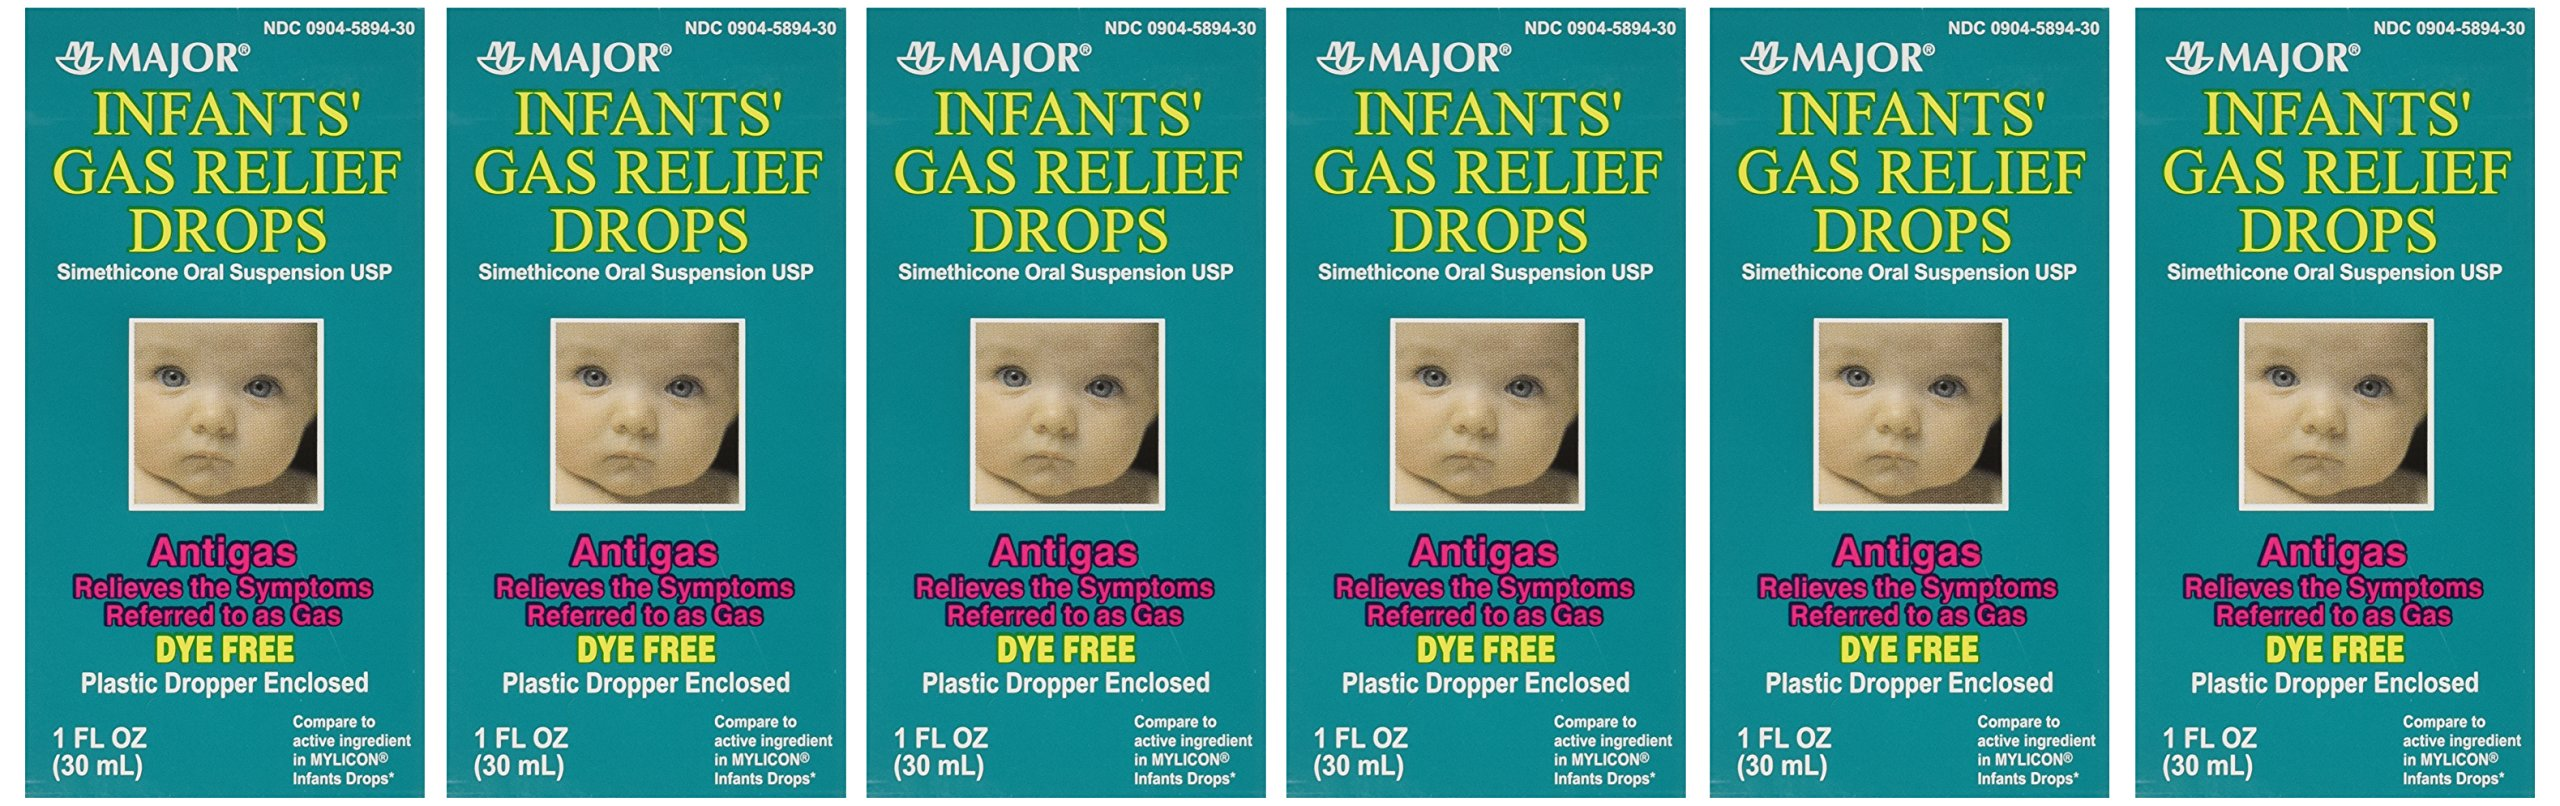 Newborns, Infants & Children Gas Relief Simethicone 20 mg/0.3ml Drops Dye Free Generic for Mylicon 1 oz (30ML) 6 PACK Total 6 oz by Major Pharmaceuticals